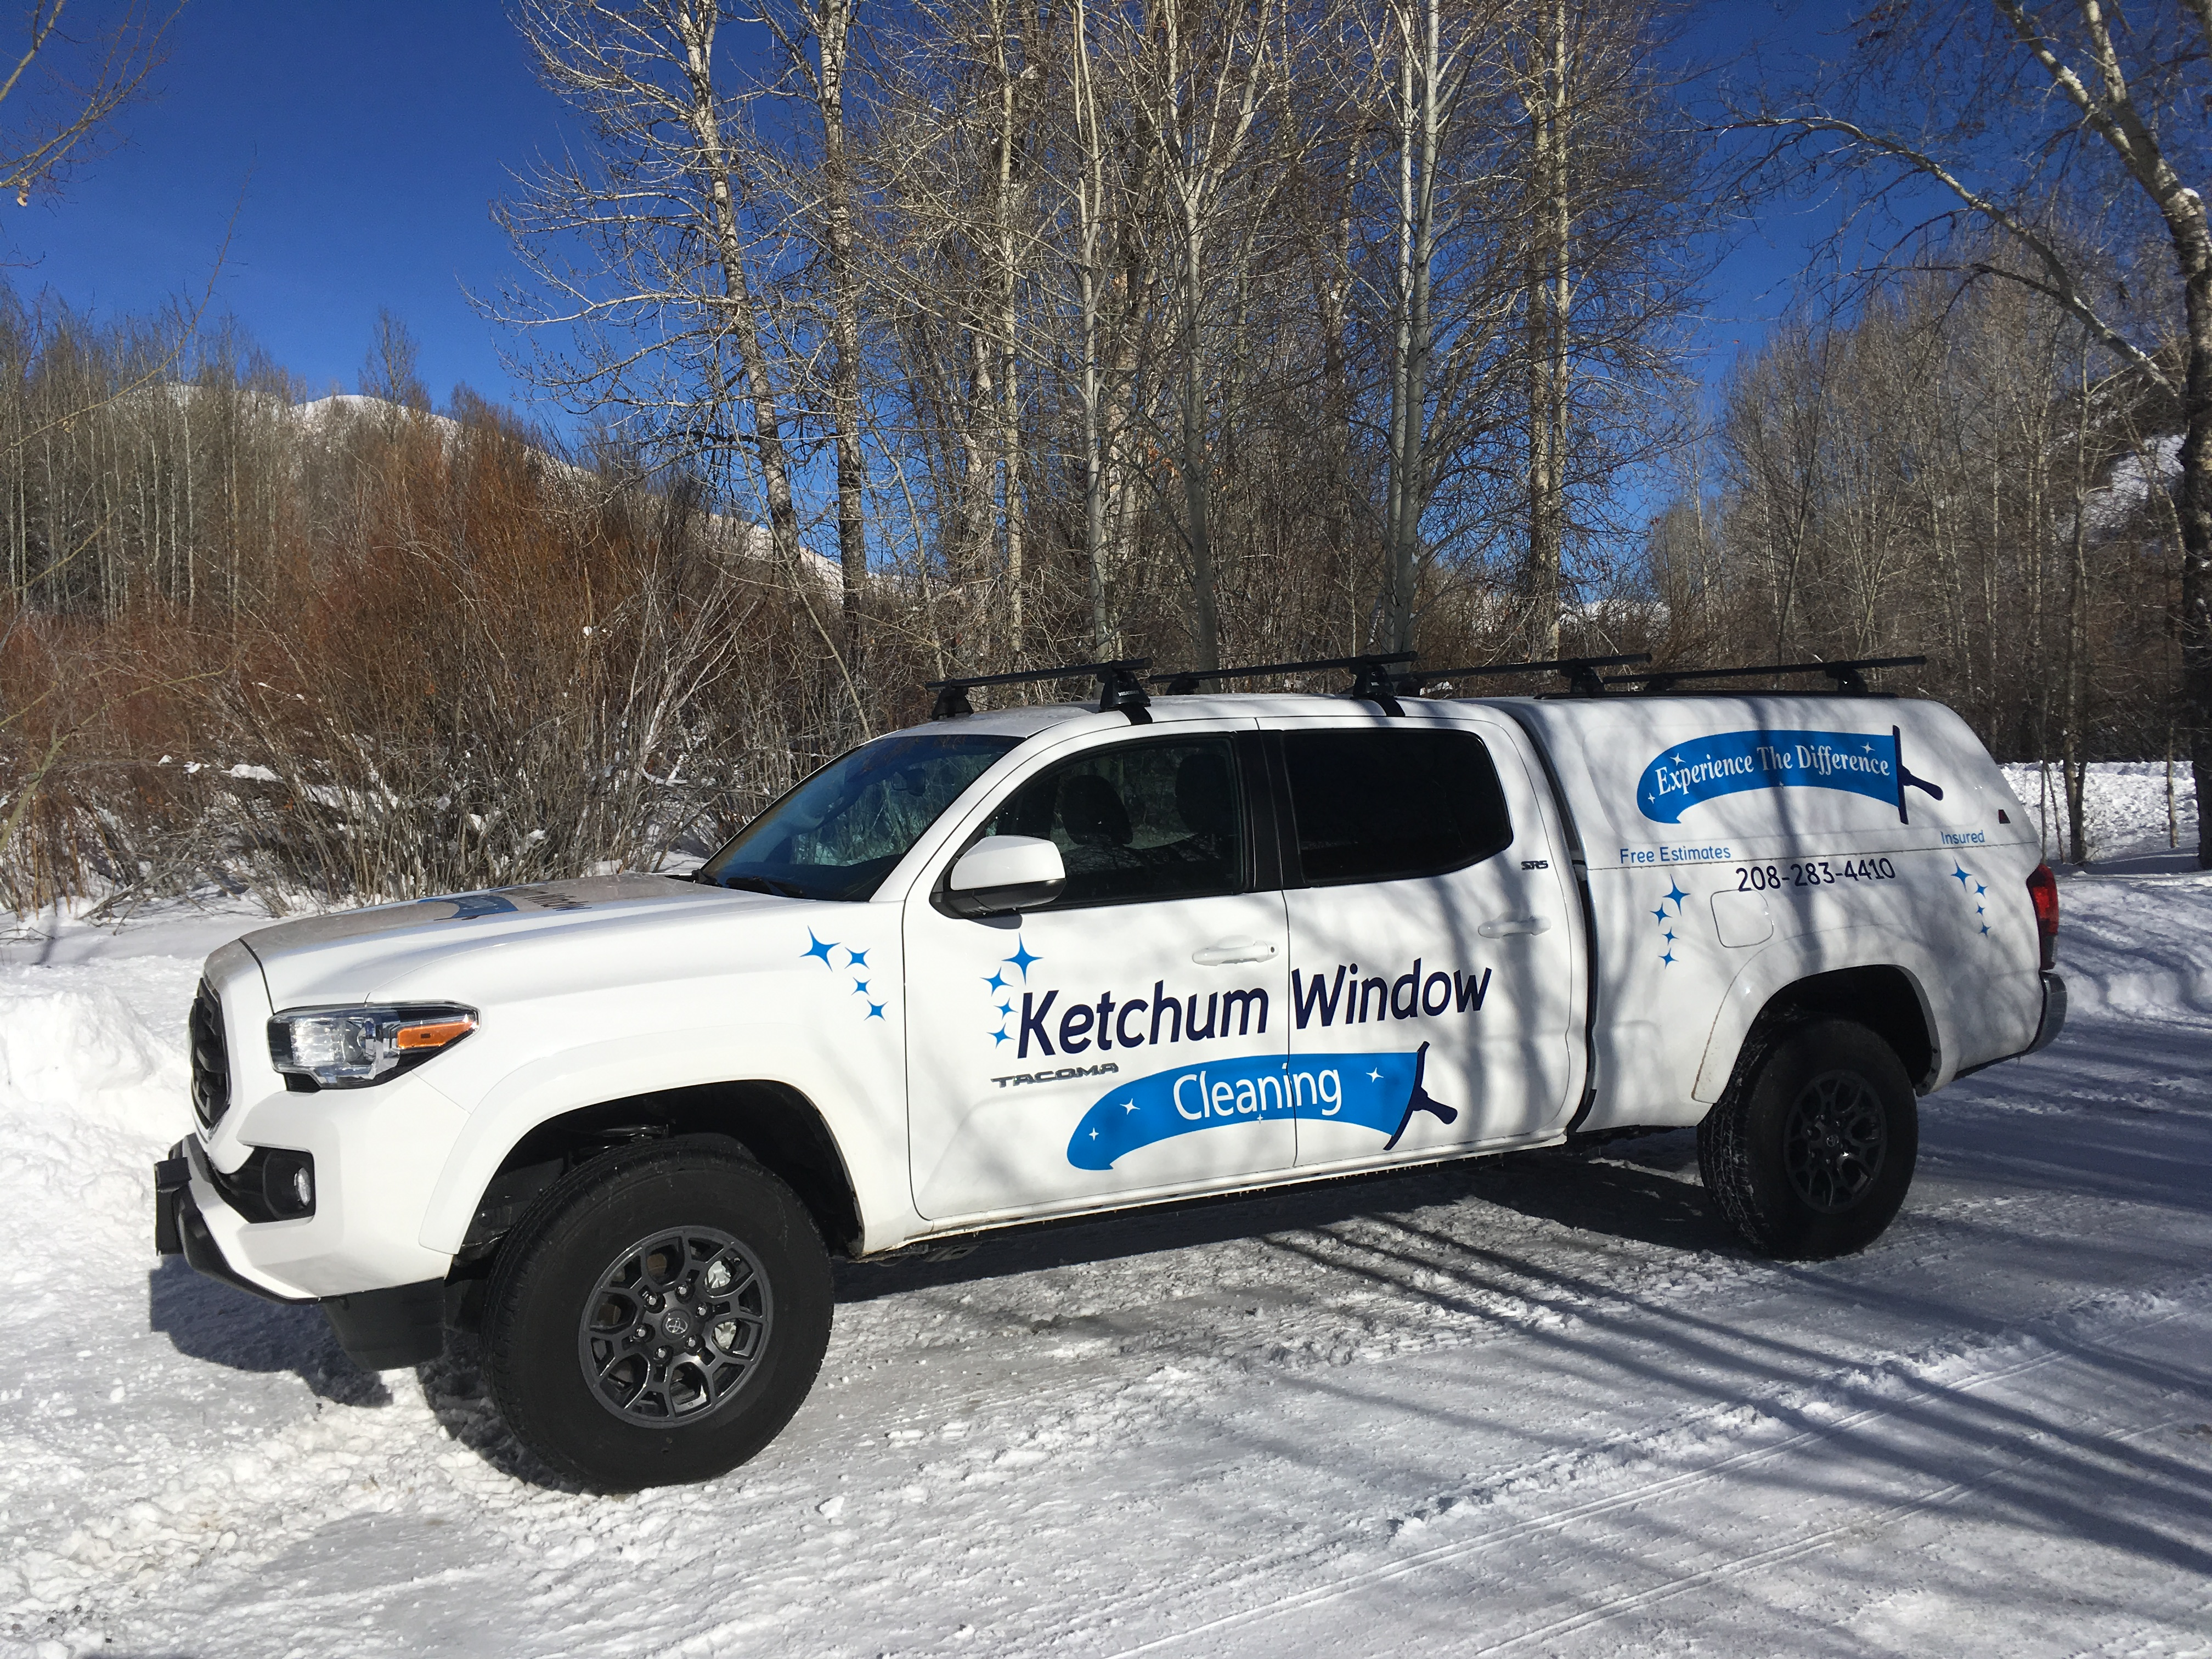 Ketchum Window Cleaning - Work truck